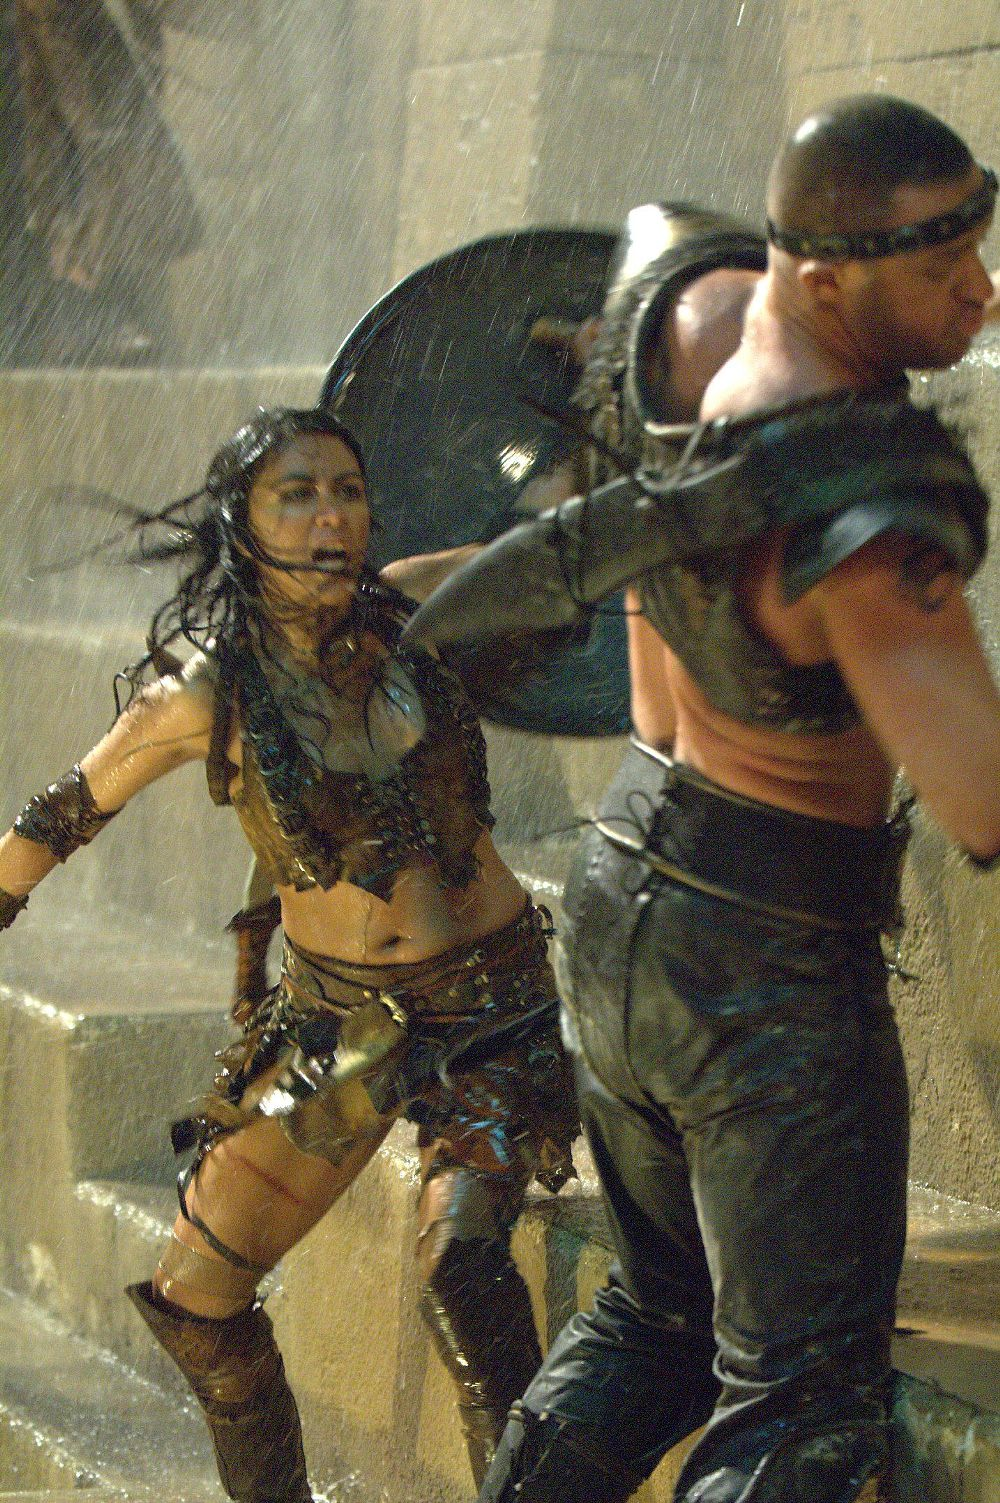 The Scorpion King: Rise of a Warrior (2008) - Telemagazyn.pl